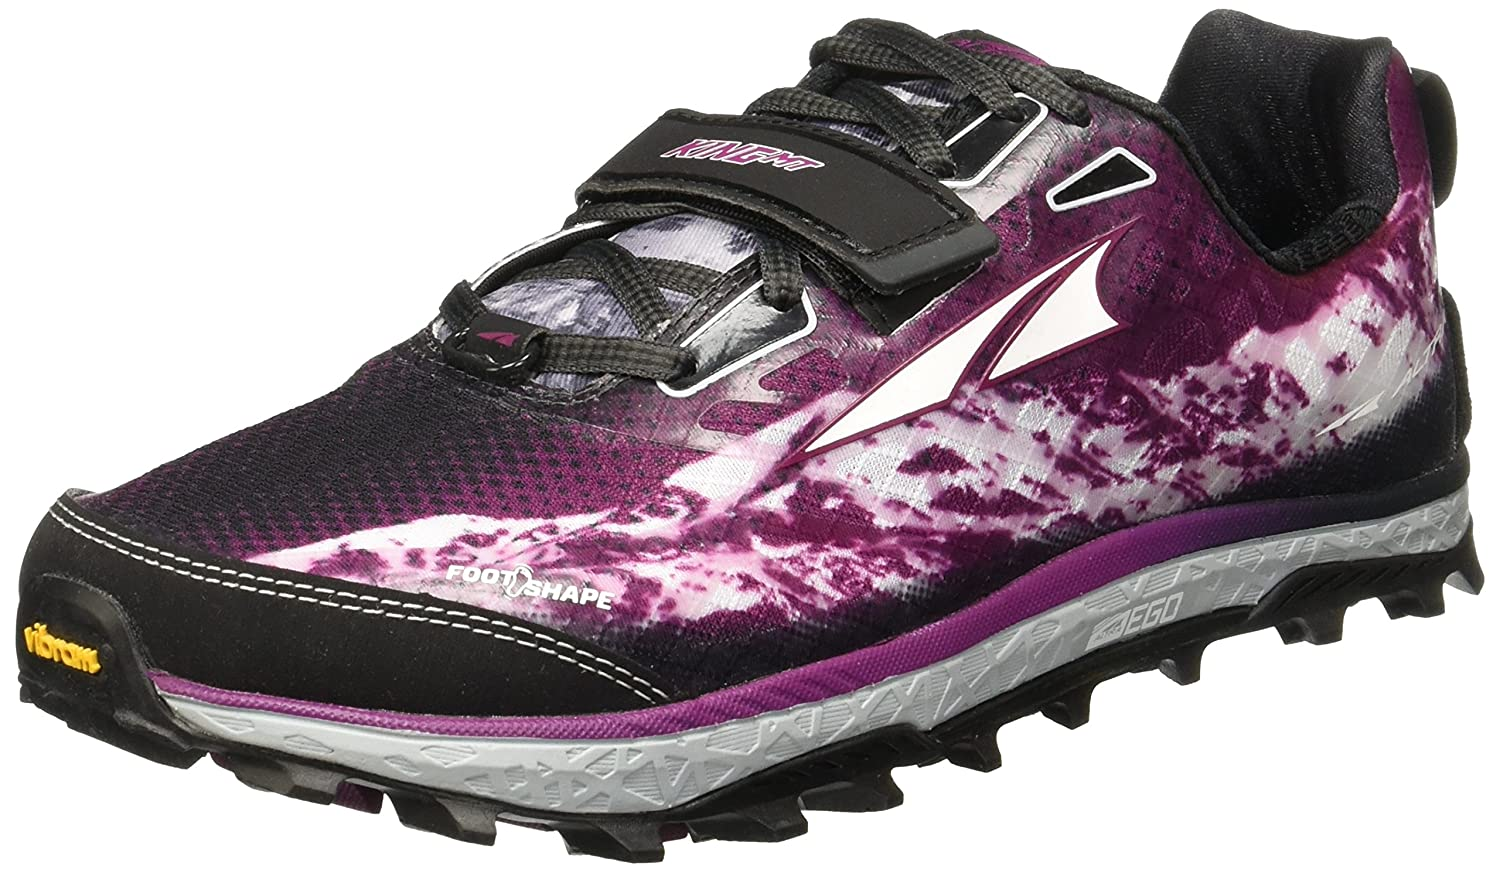 Altra King MT Trail Running Shoe - Women's B01HNJVWHA 7 B(M) US|Gray Magenta